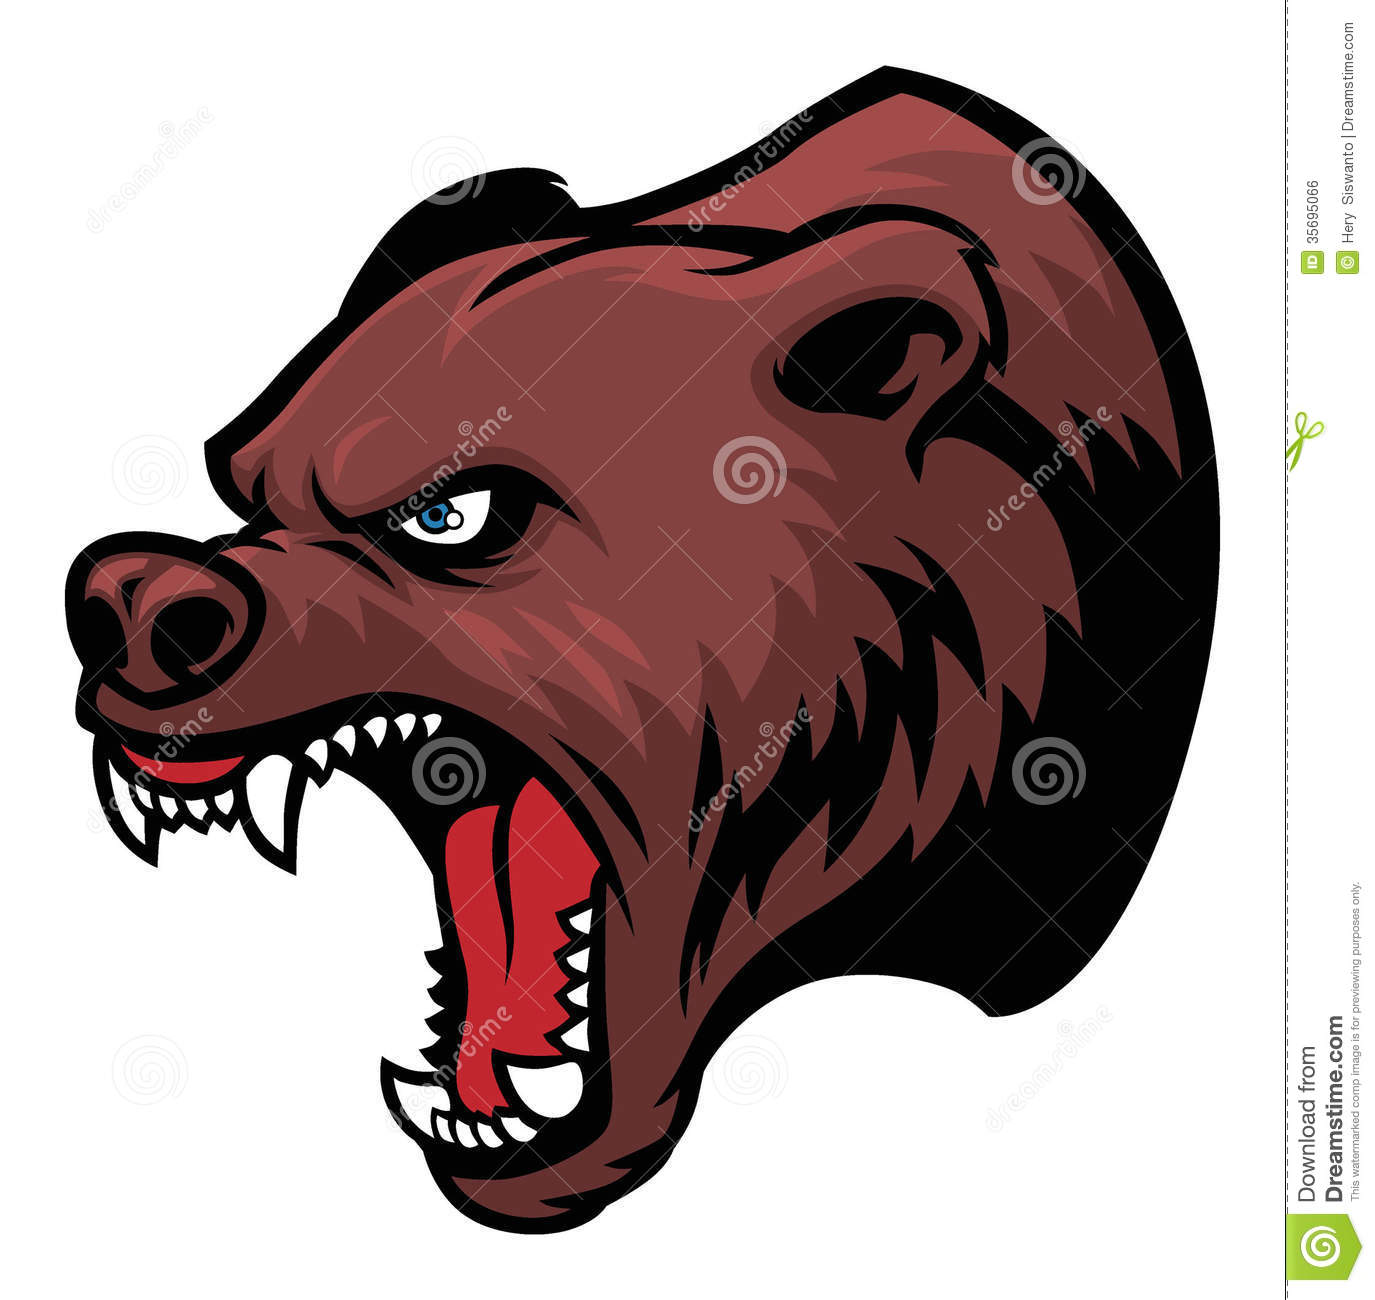 grizzly bear head royalty free stock image image 35695066